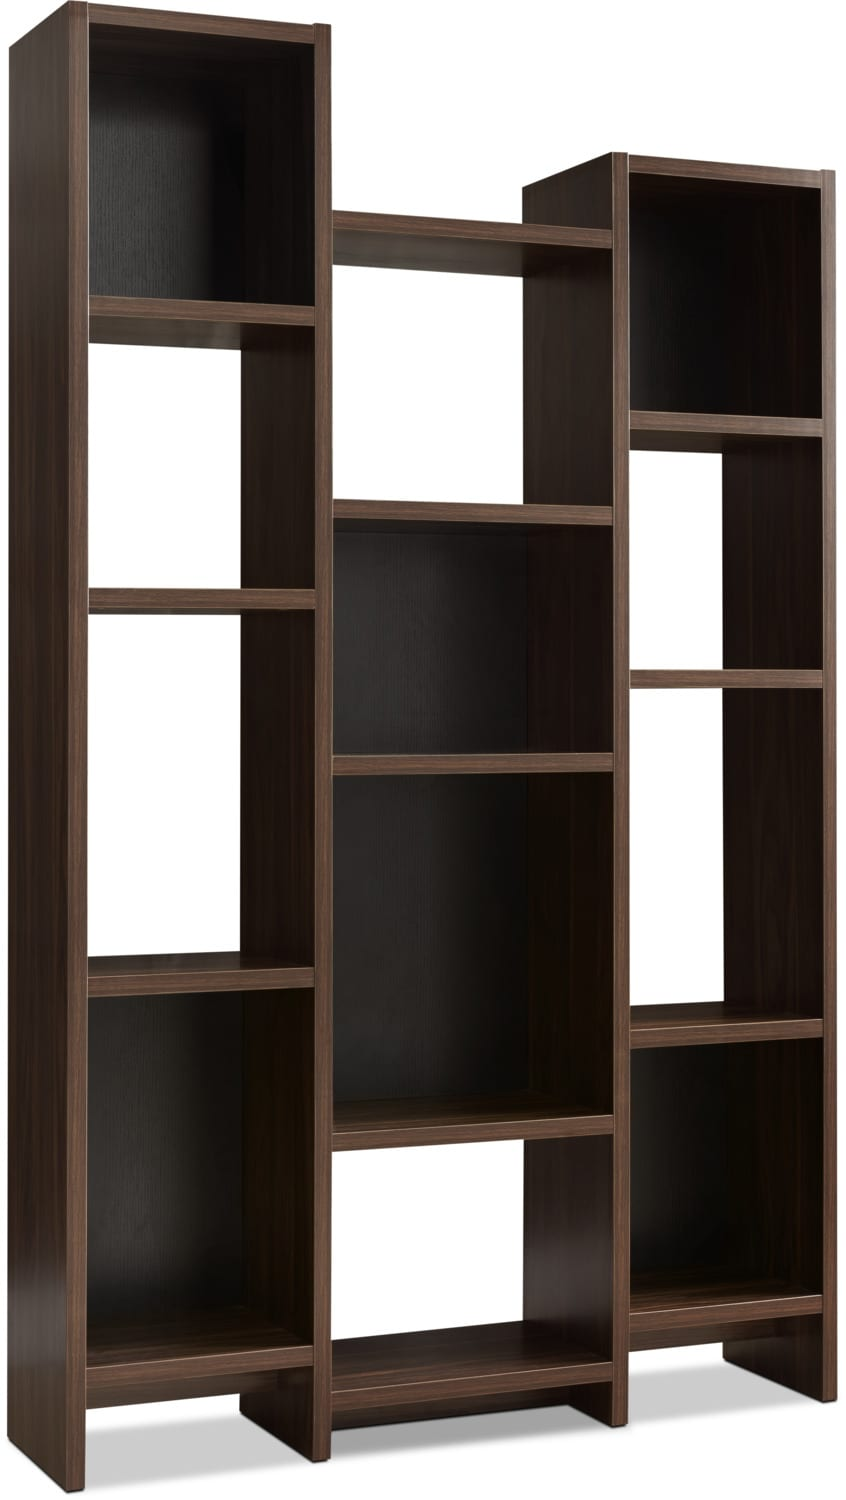 Home Office Furniture - Wilson Bookcase